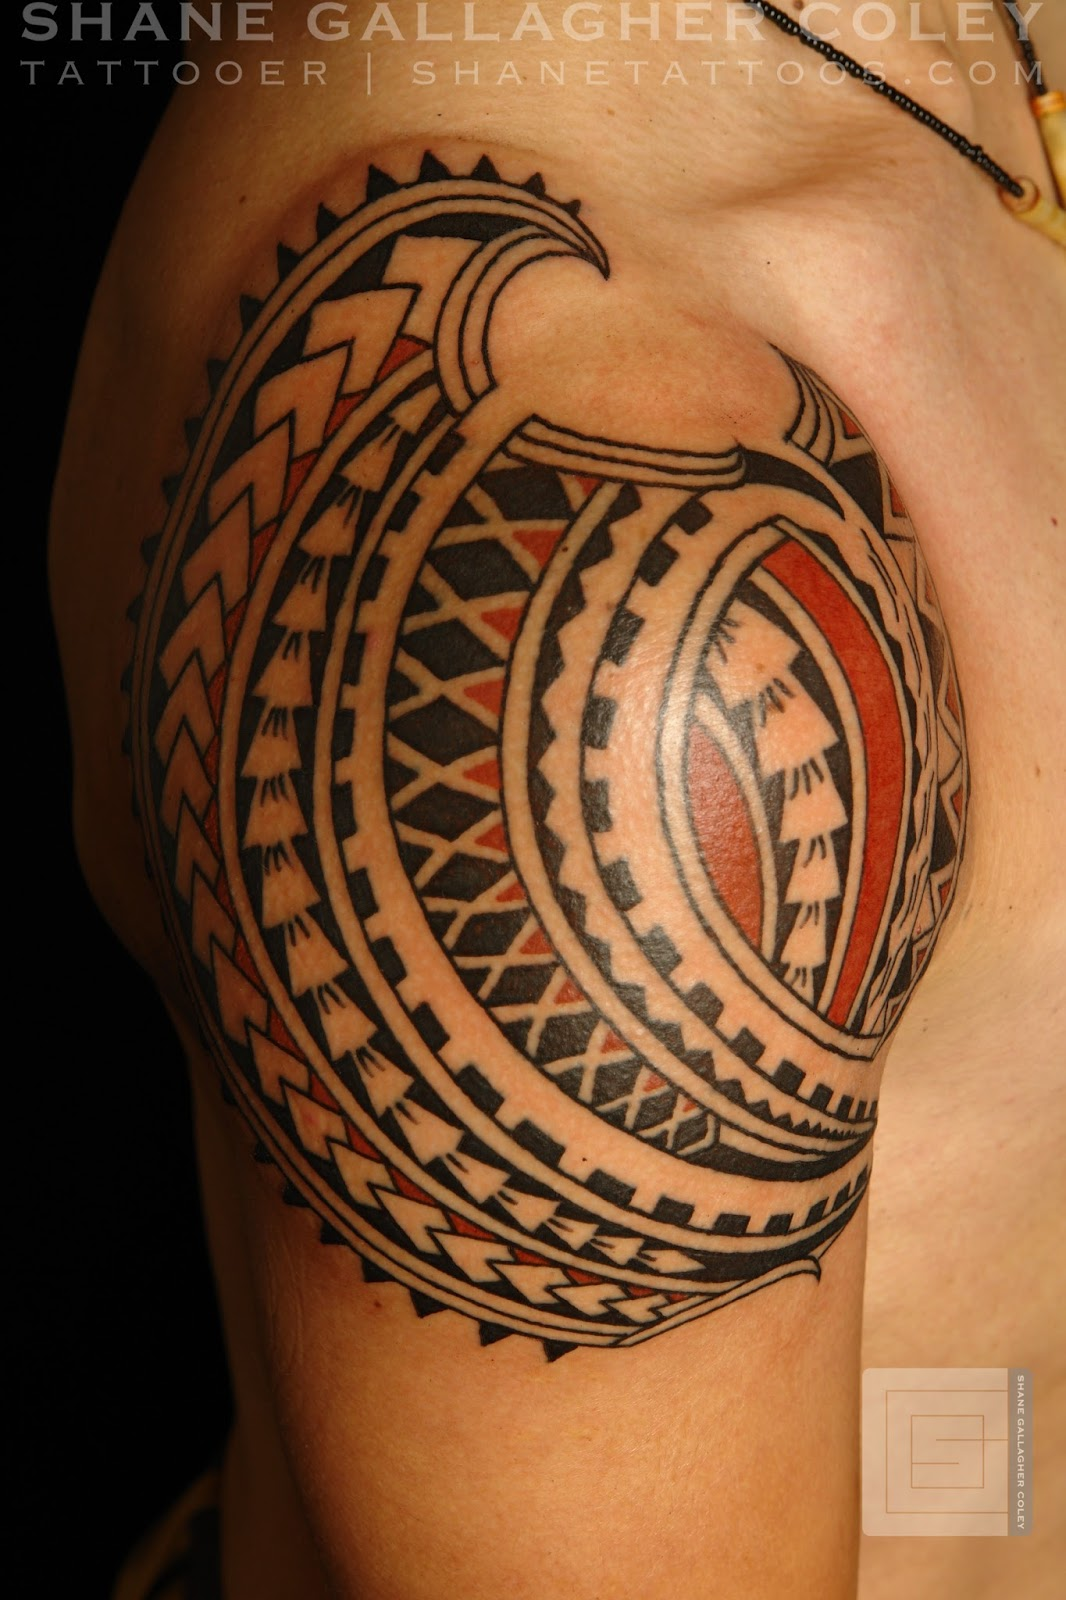 Body Art World Tattoos Maori Tattoo Art And Traditional: MAORI POLYNESIAN TATTOO: Polynesian Shoulder Tattoo